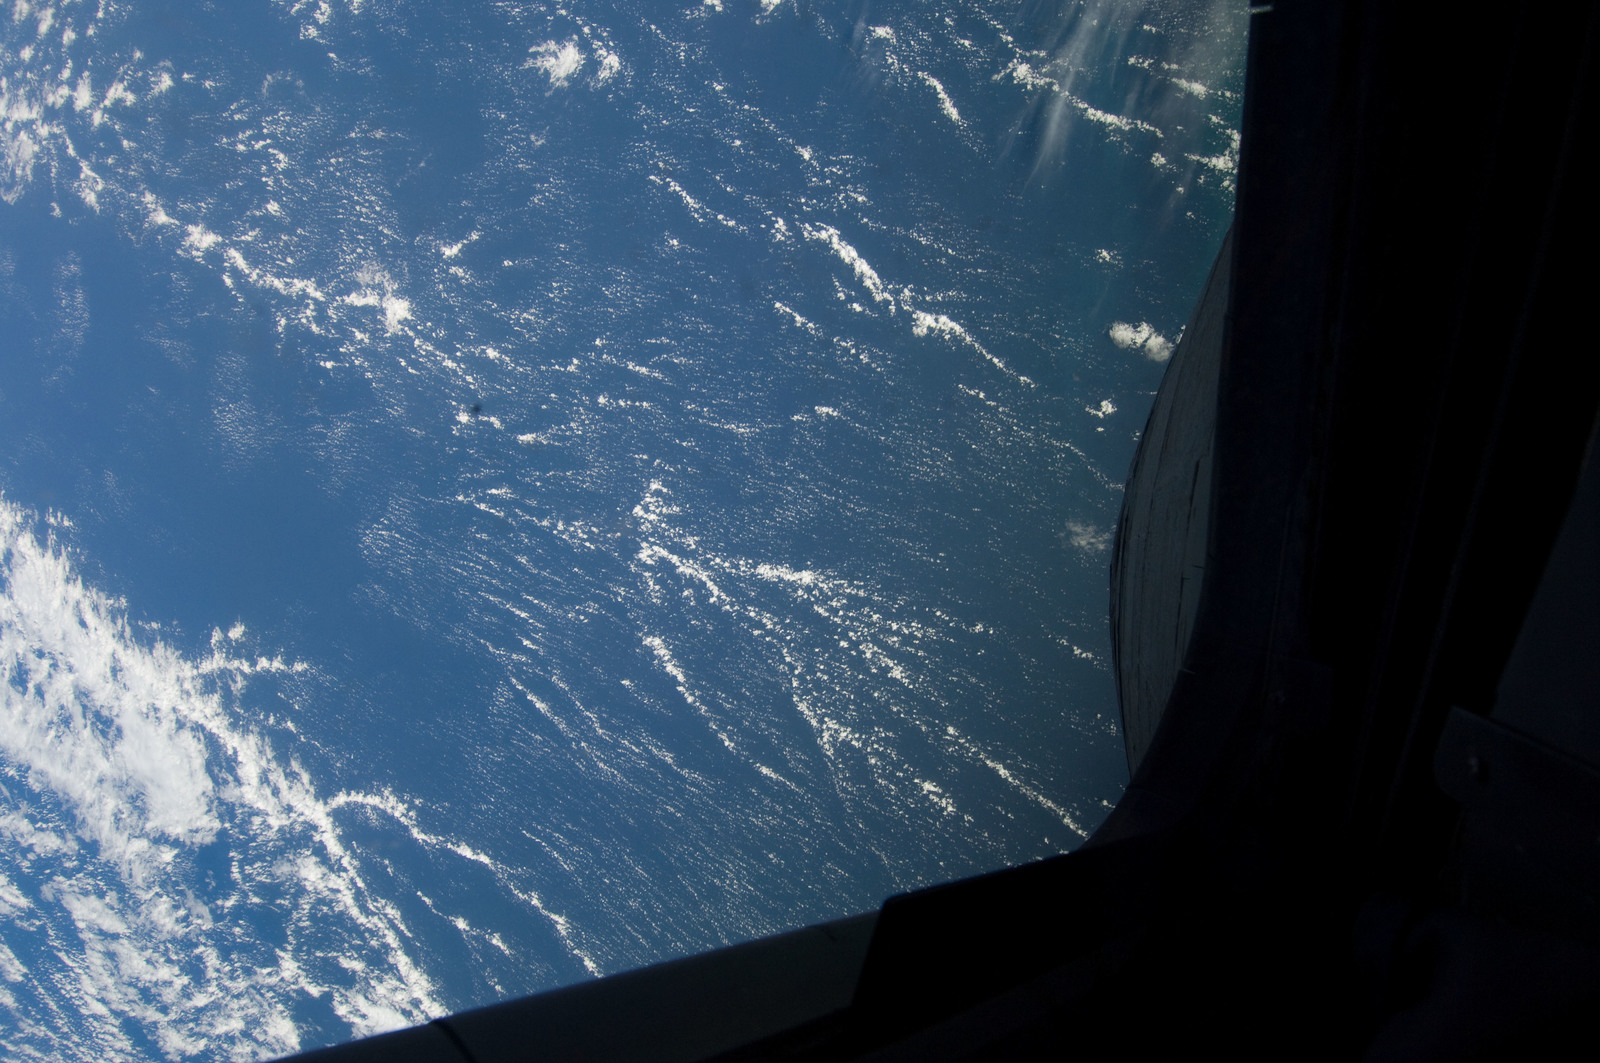 s133E006932 - STS-133 - Earth Observation taken by the STS-133 crew